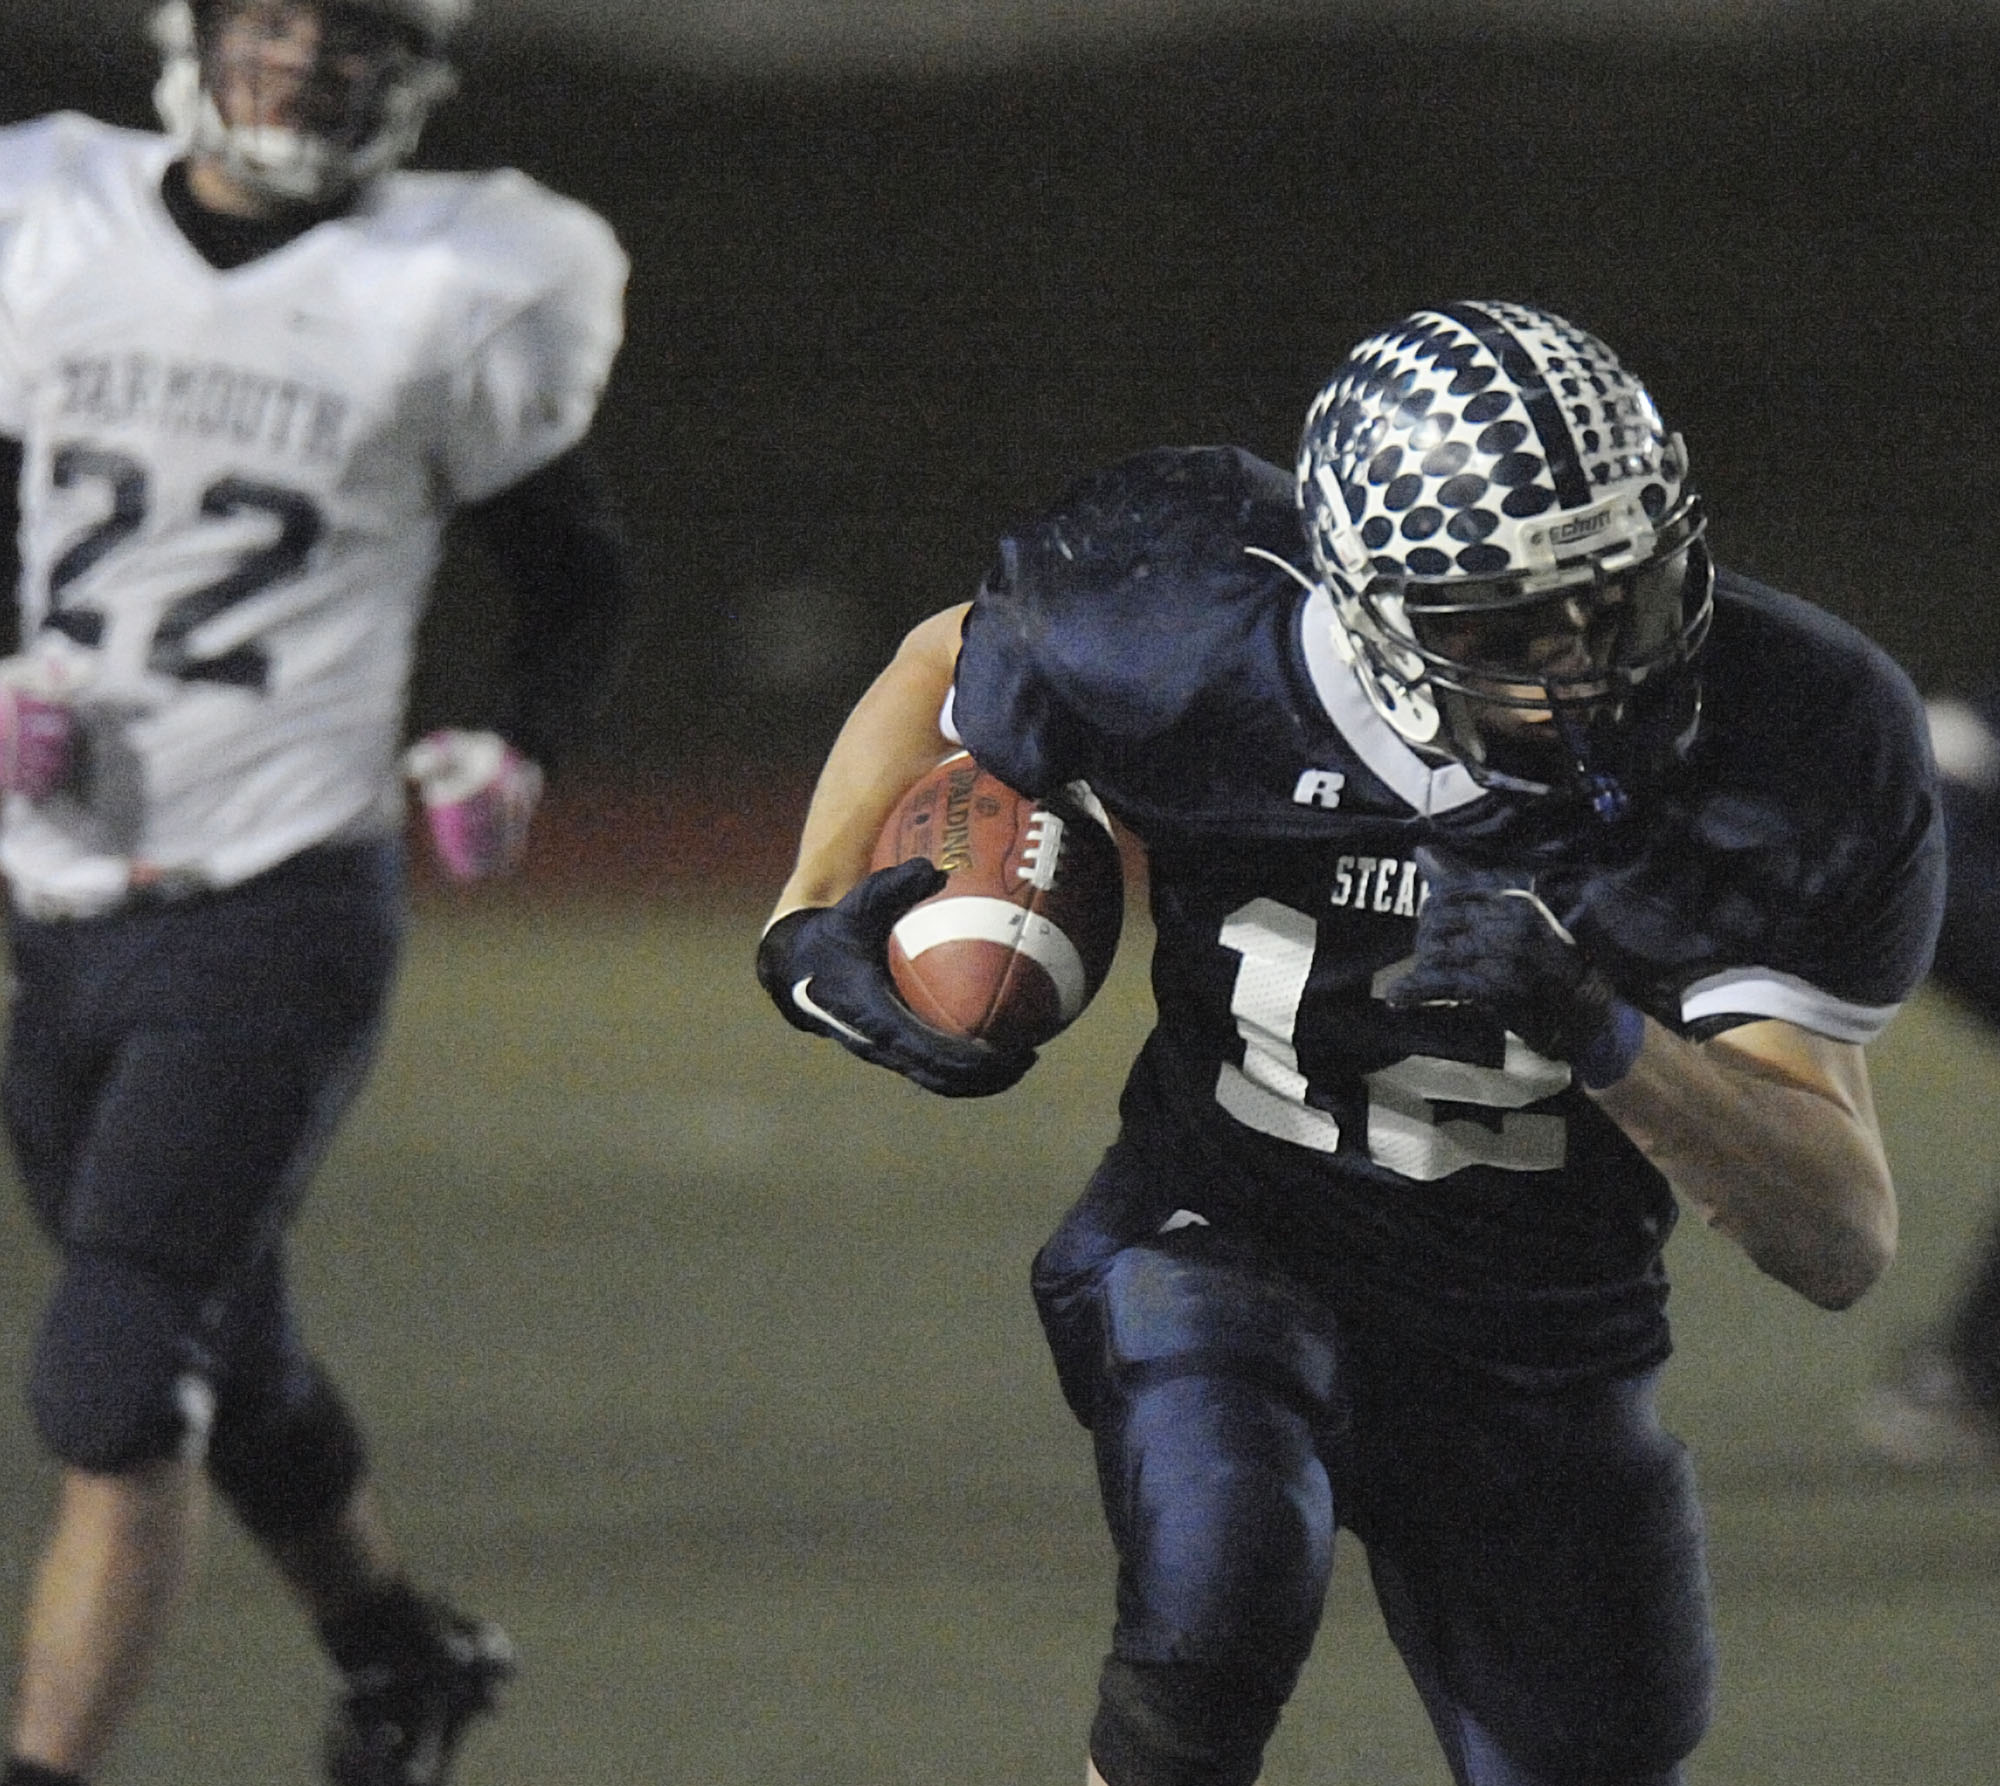 Stearns running back Bill Eurich (12) carries the ball in the second half of Saturday's Class C state football title game against Yarmouth in Portland on Saturday. Yarmouth won 34-6.